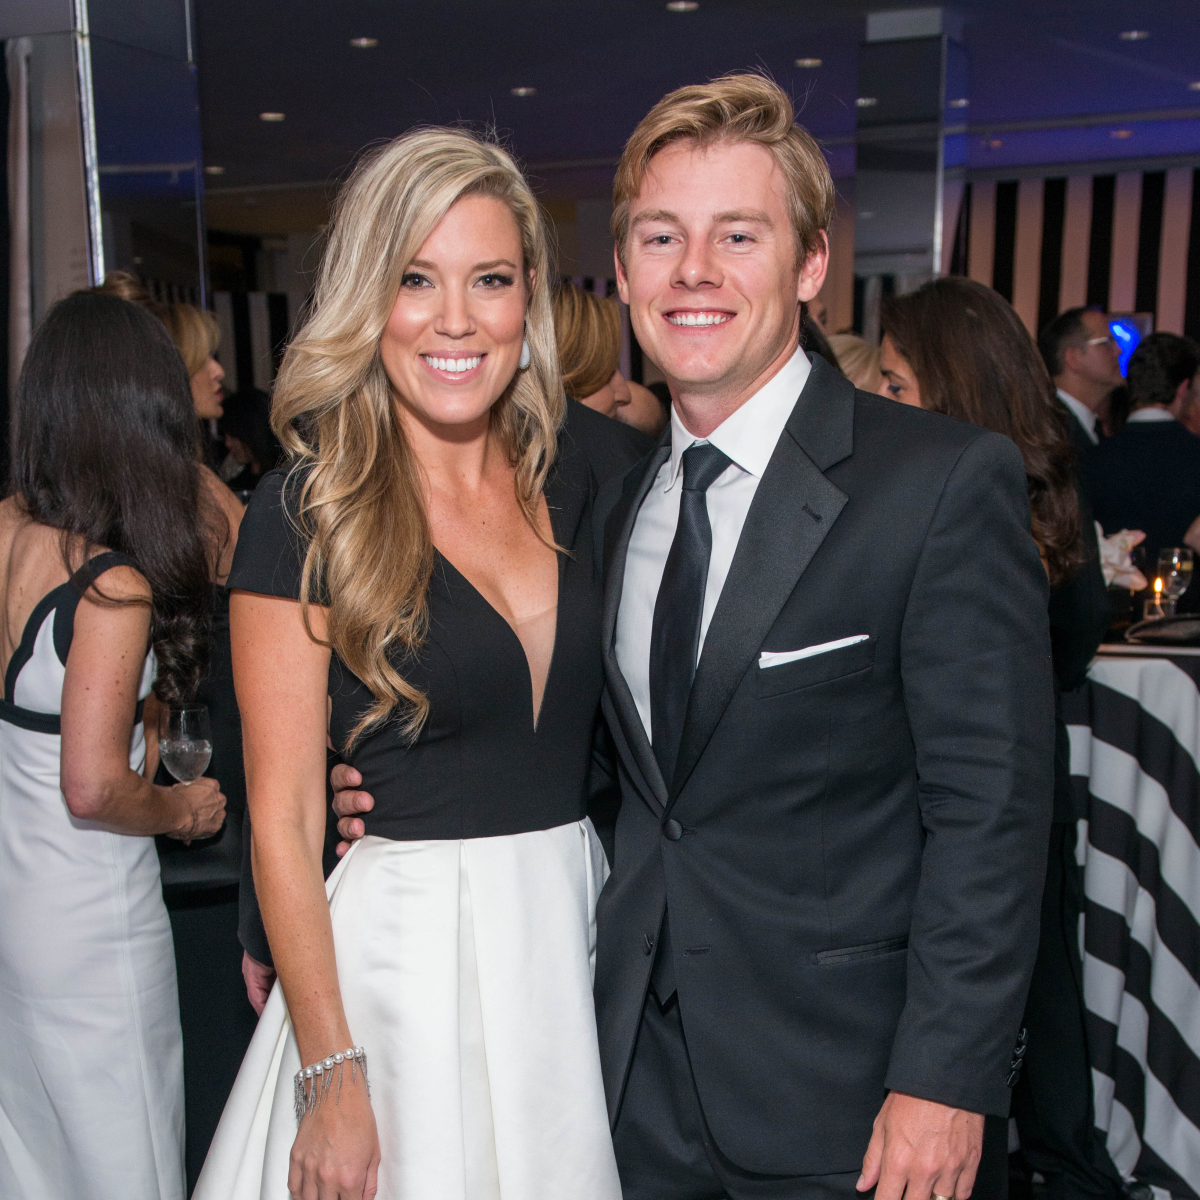 News, Shelby, Museum of Fine Arts gala, Oct. 2015, Holly Alvis, Austin Alvis